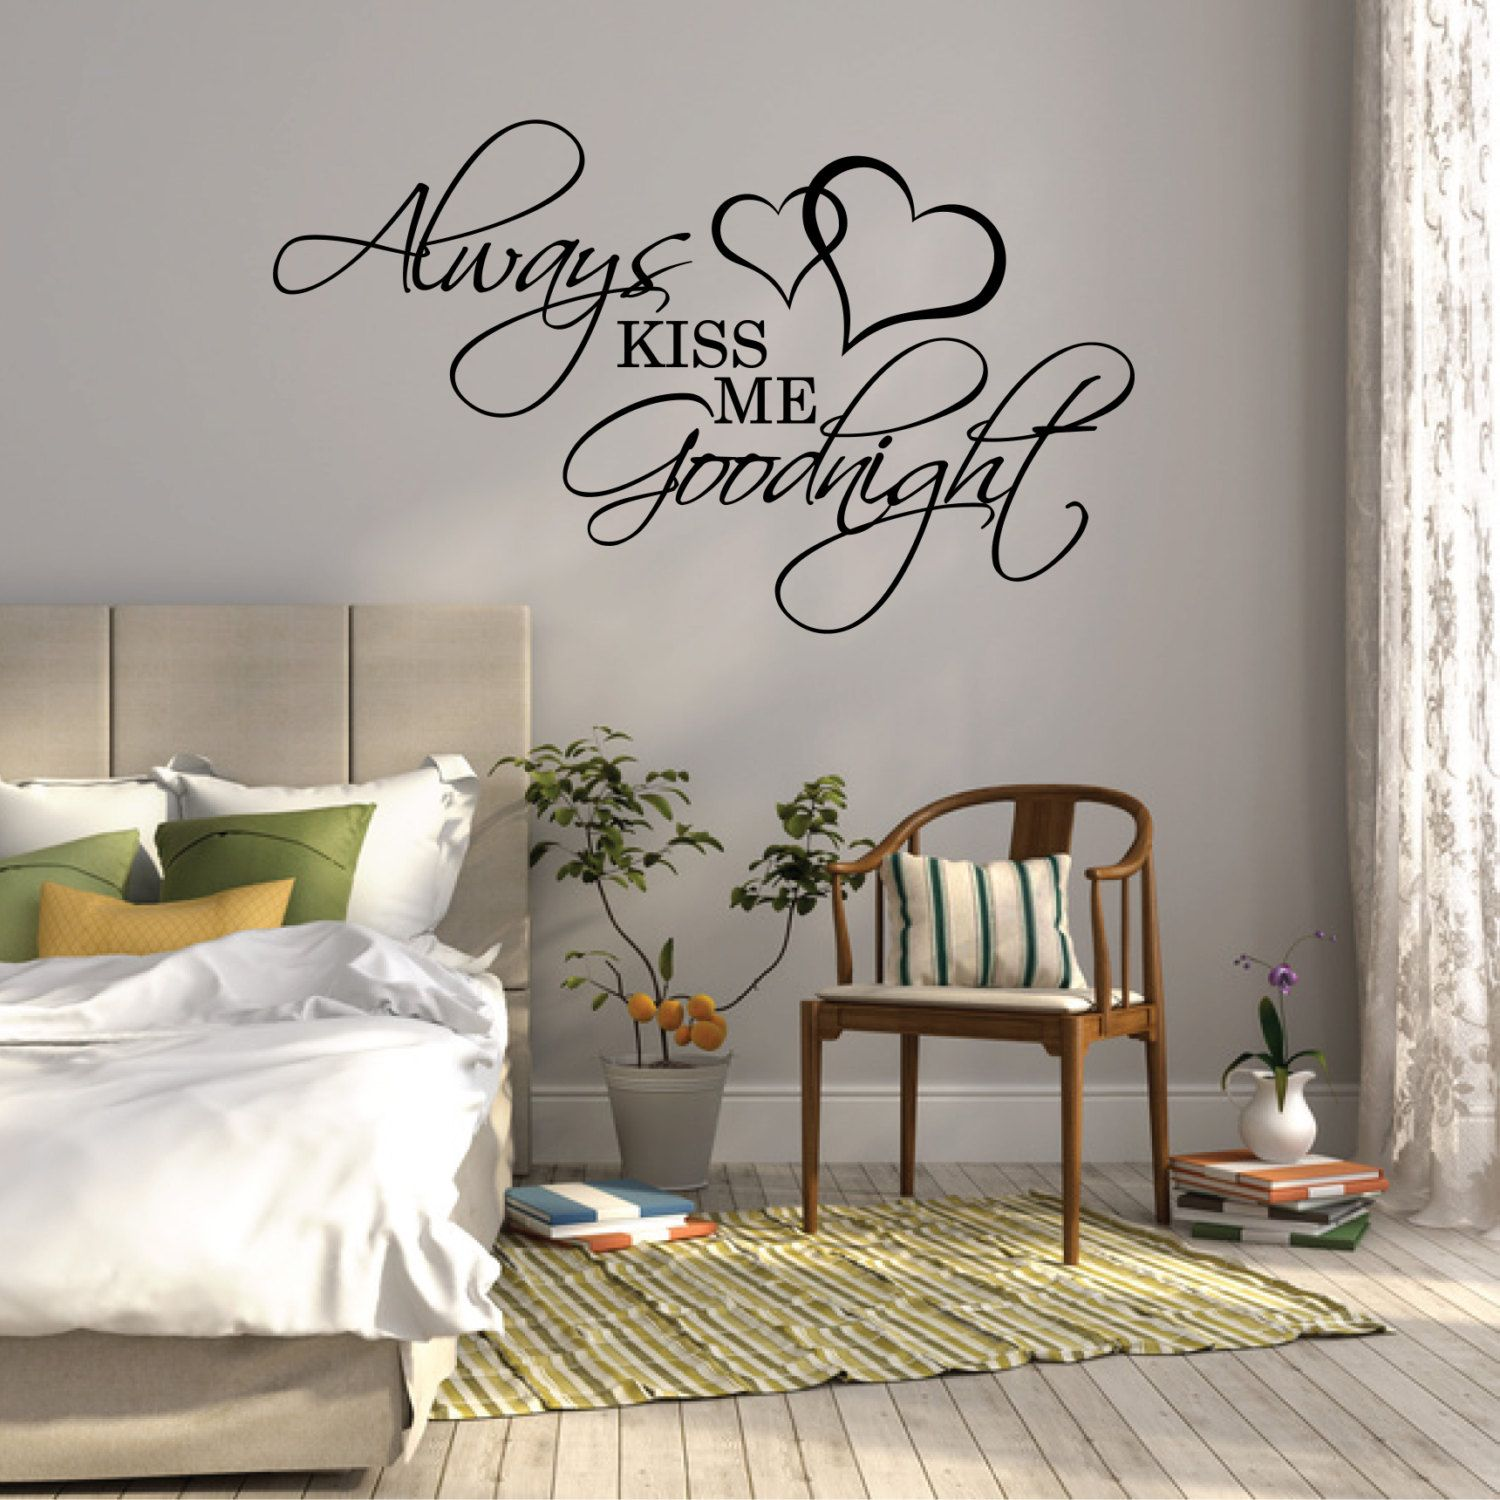 Wall Sticker Decoration Ideas Part - 50: Wall Sticker Quote- Always KISS ME Goodnight | Over Bed Wall Decor |  Bedroom Wall